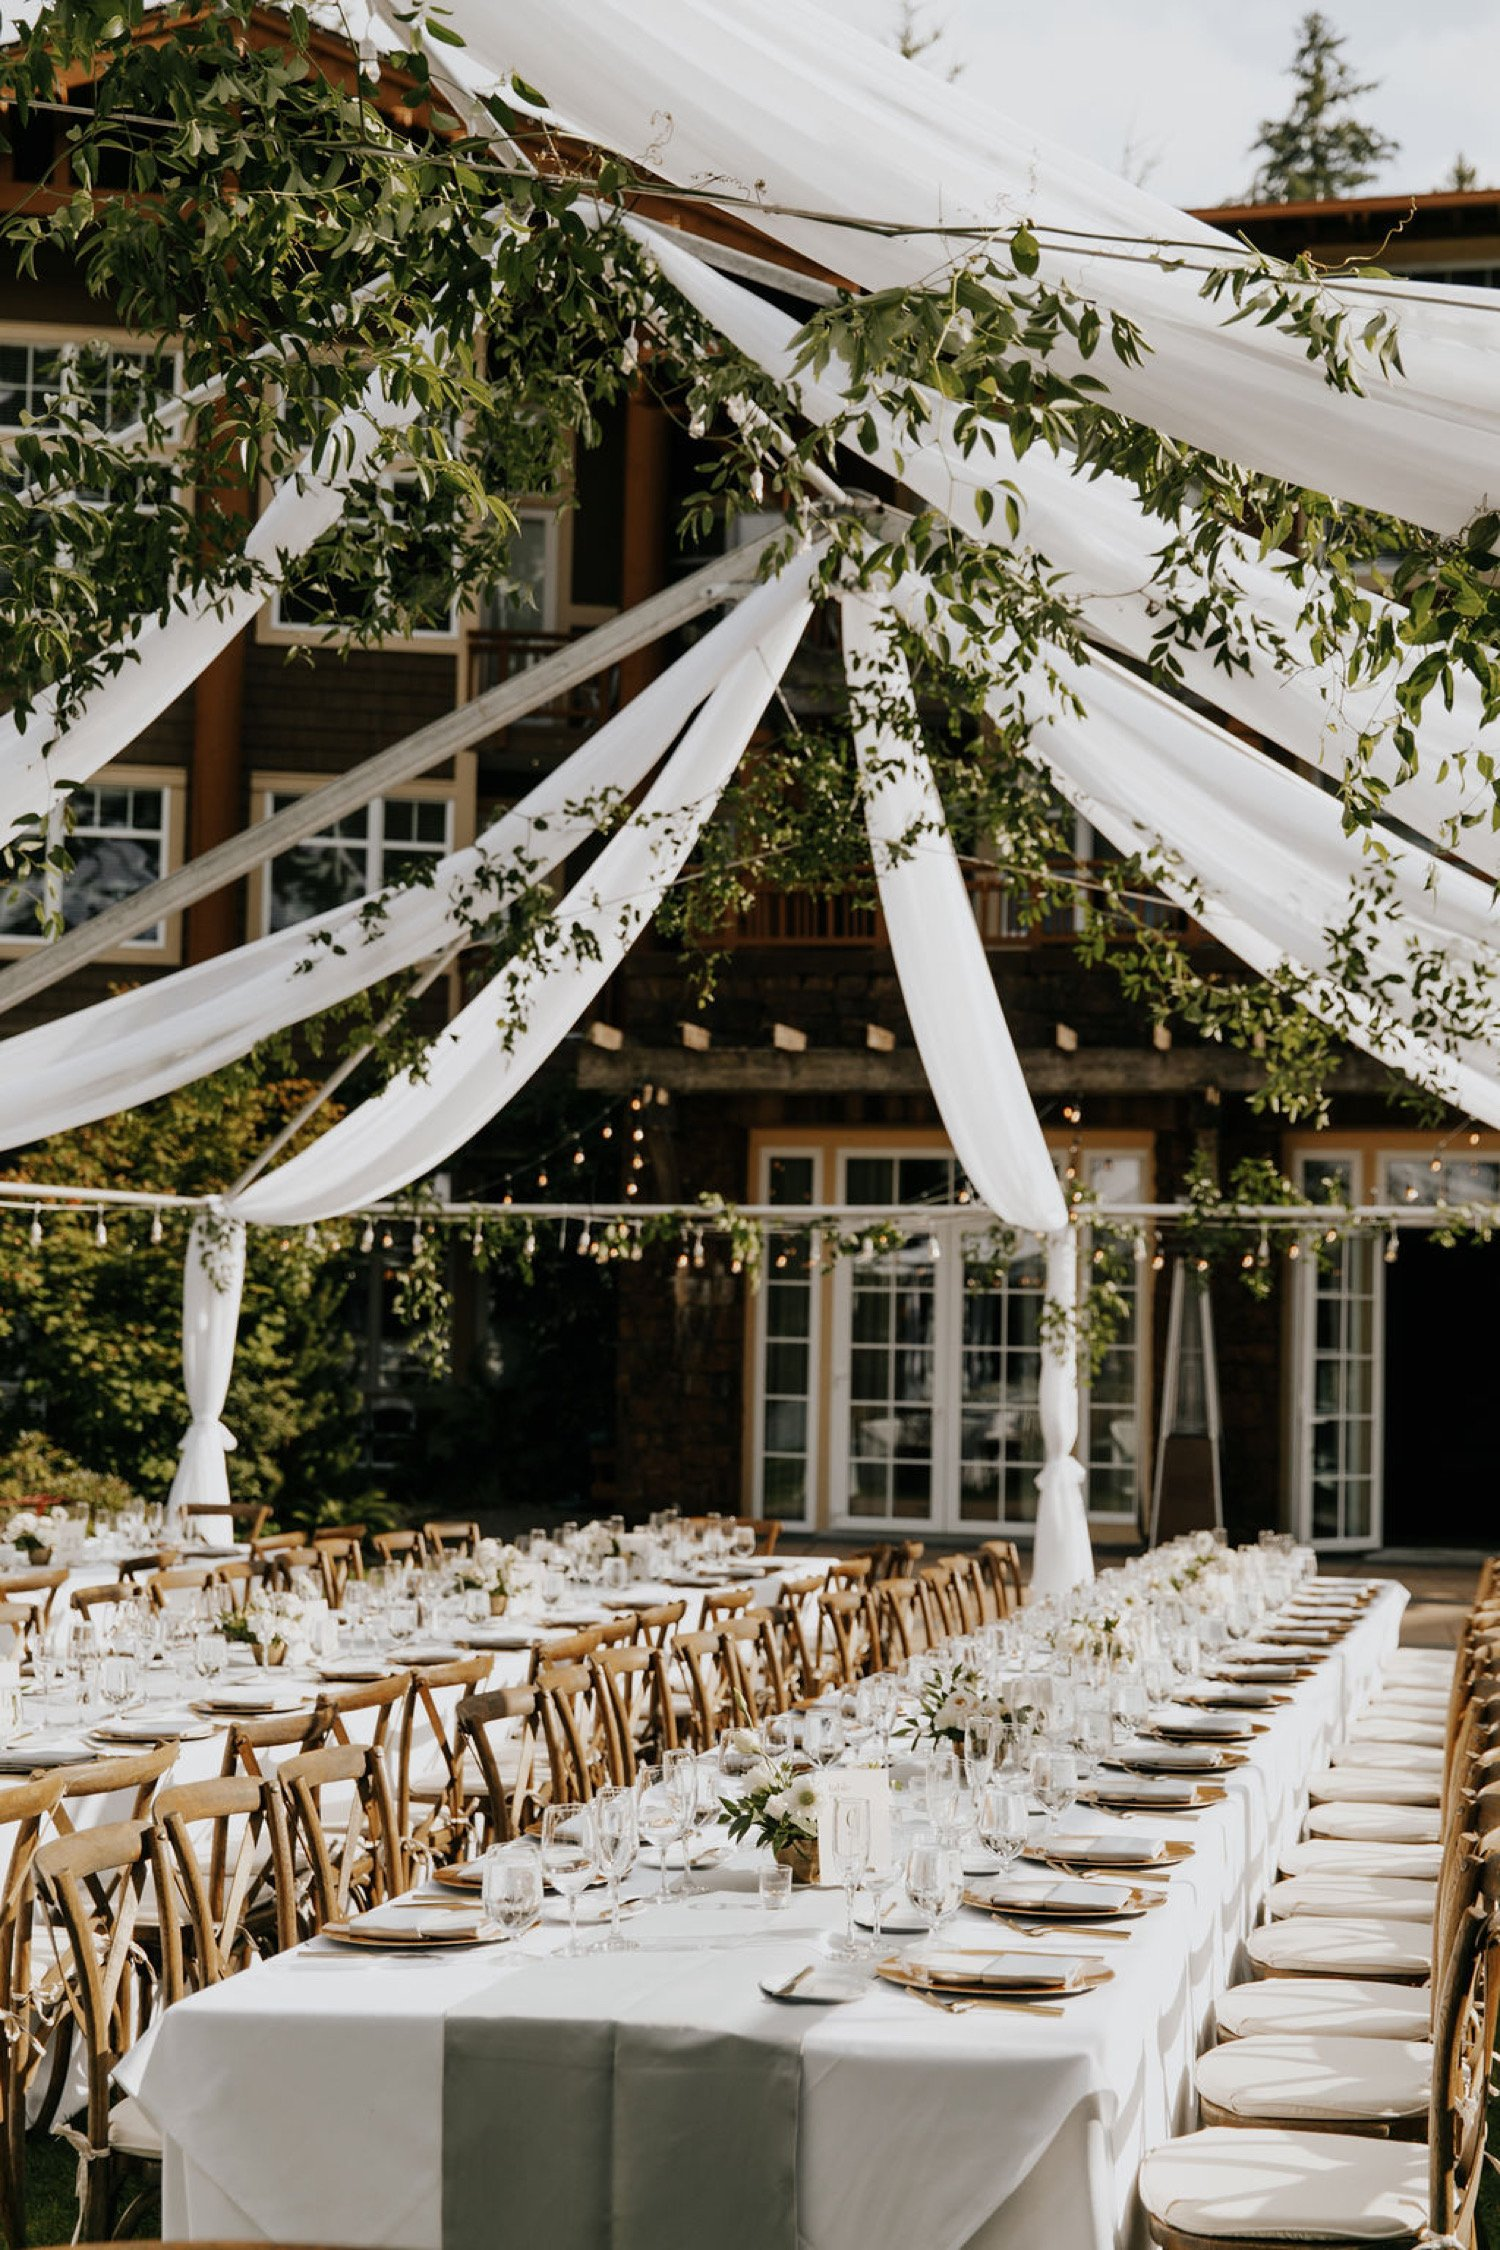 Wedding reception set up with long farm tables, hanging drapes and hanging greenery